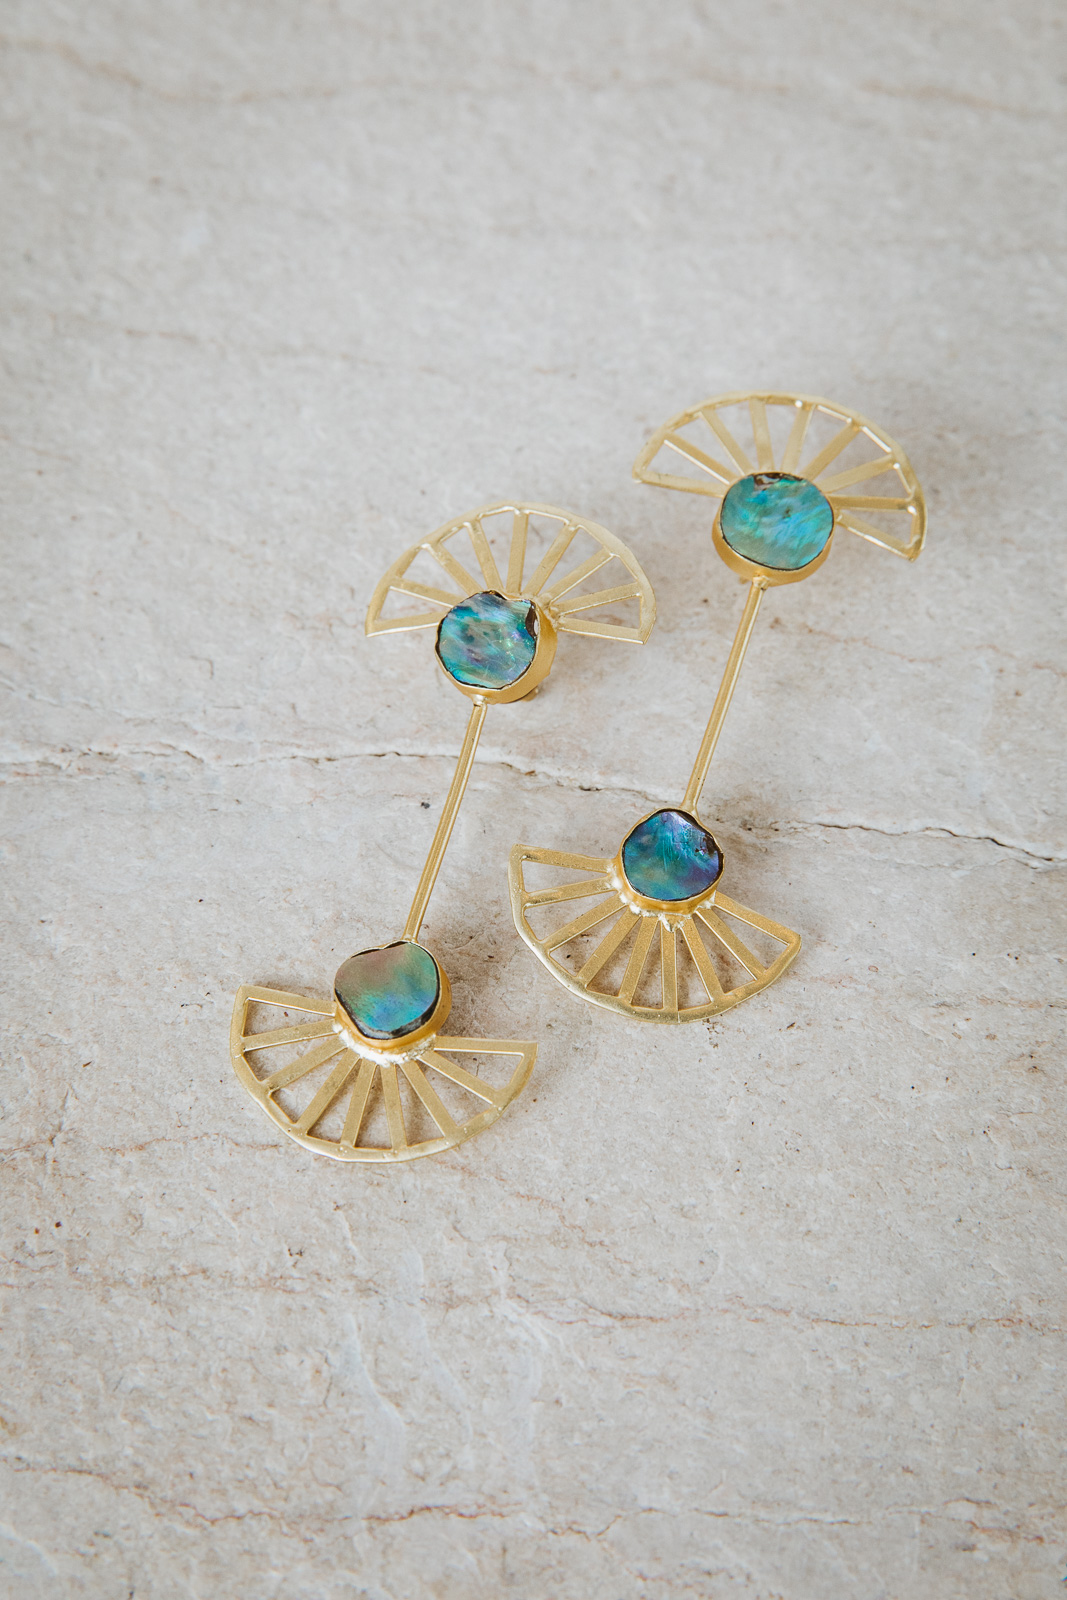 ABALONE SHELL FAN EARRINGS